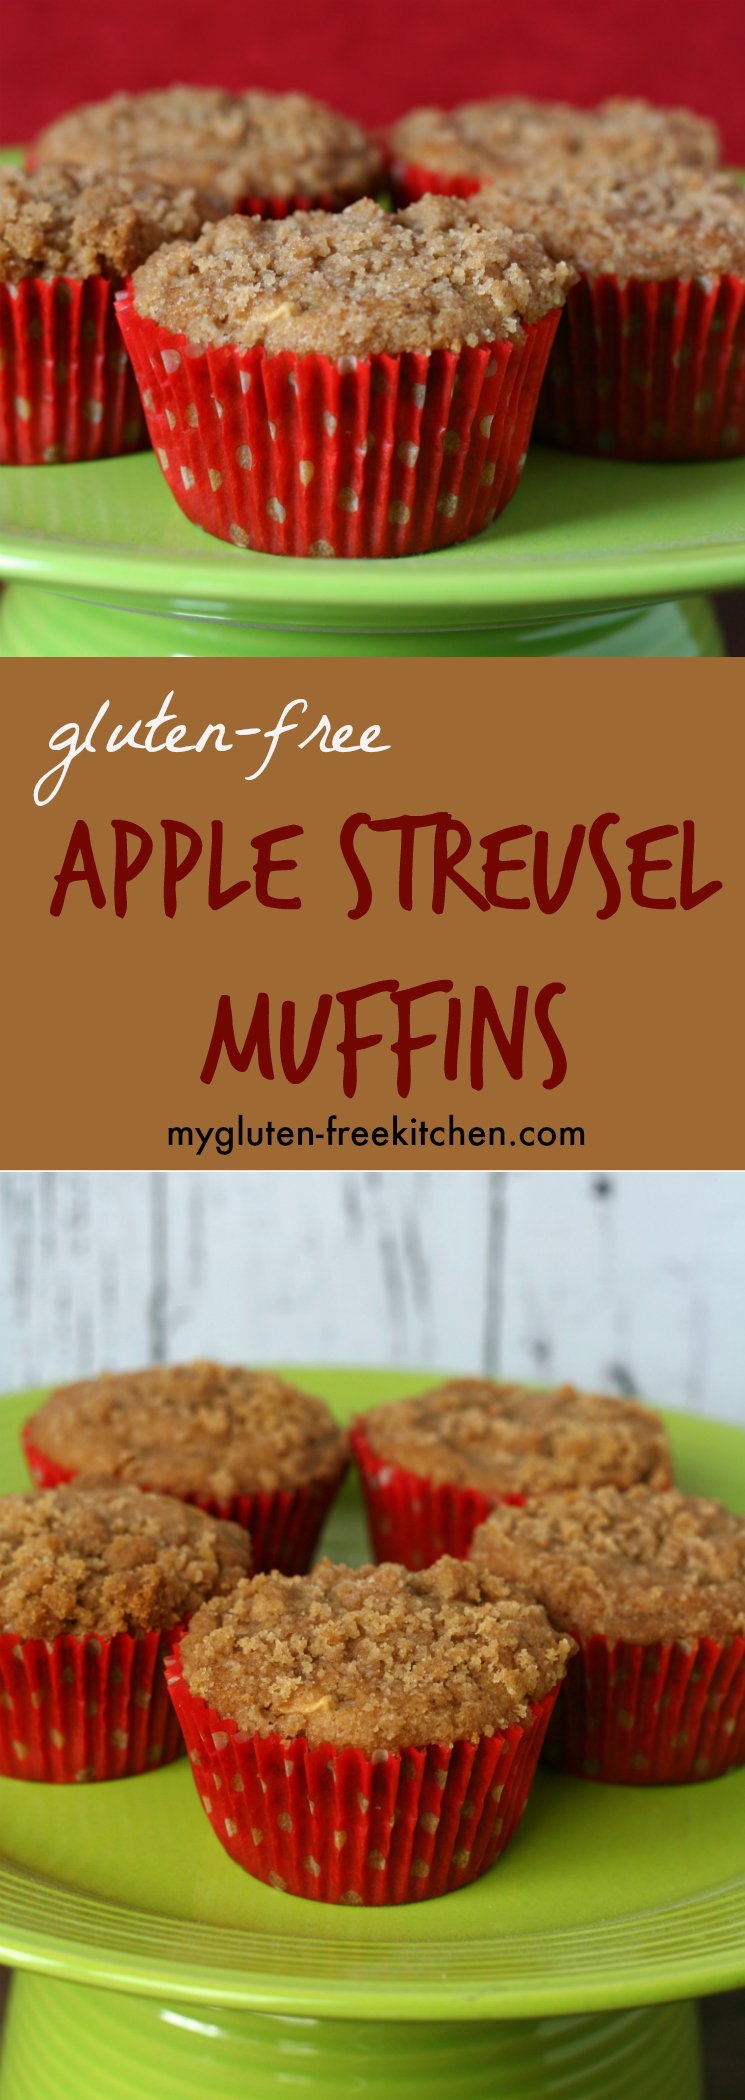 Gluten-free Apple Streusel Muffins Recipe. I love these!